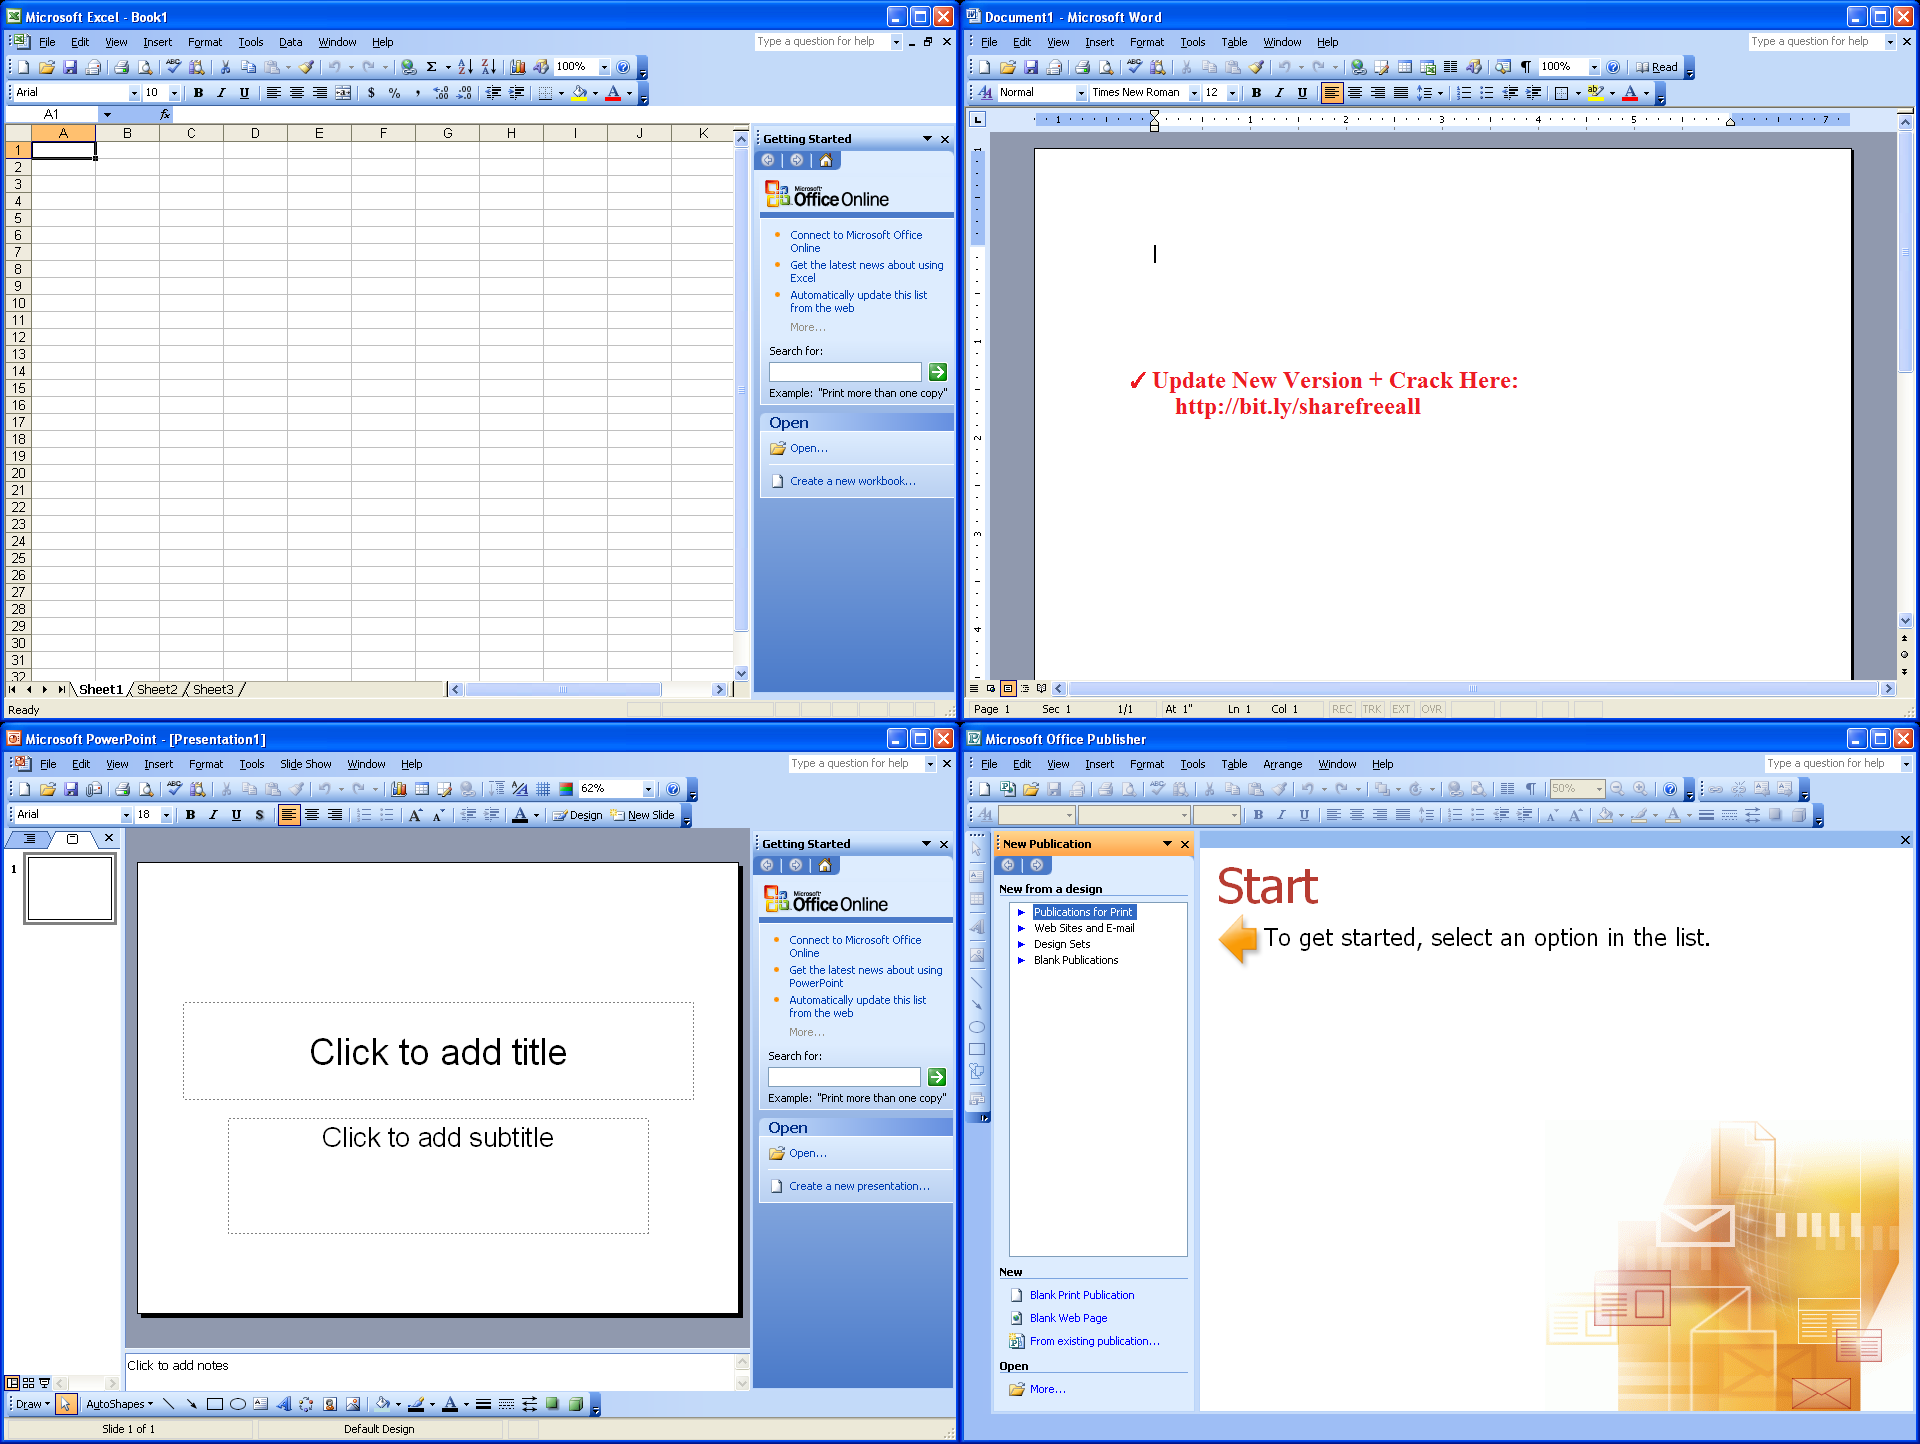 MICROSOFT OFFICE 2003 ACTIVATION KEY CRACK FREE DOWNLOAD FOR